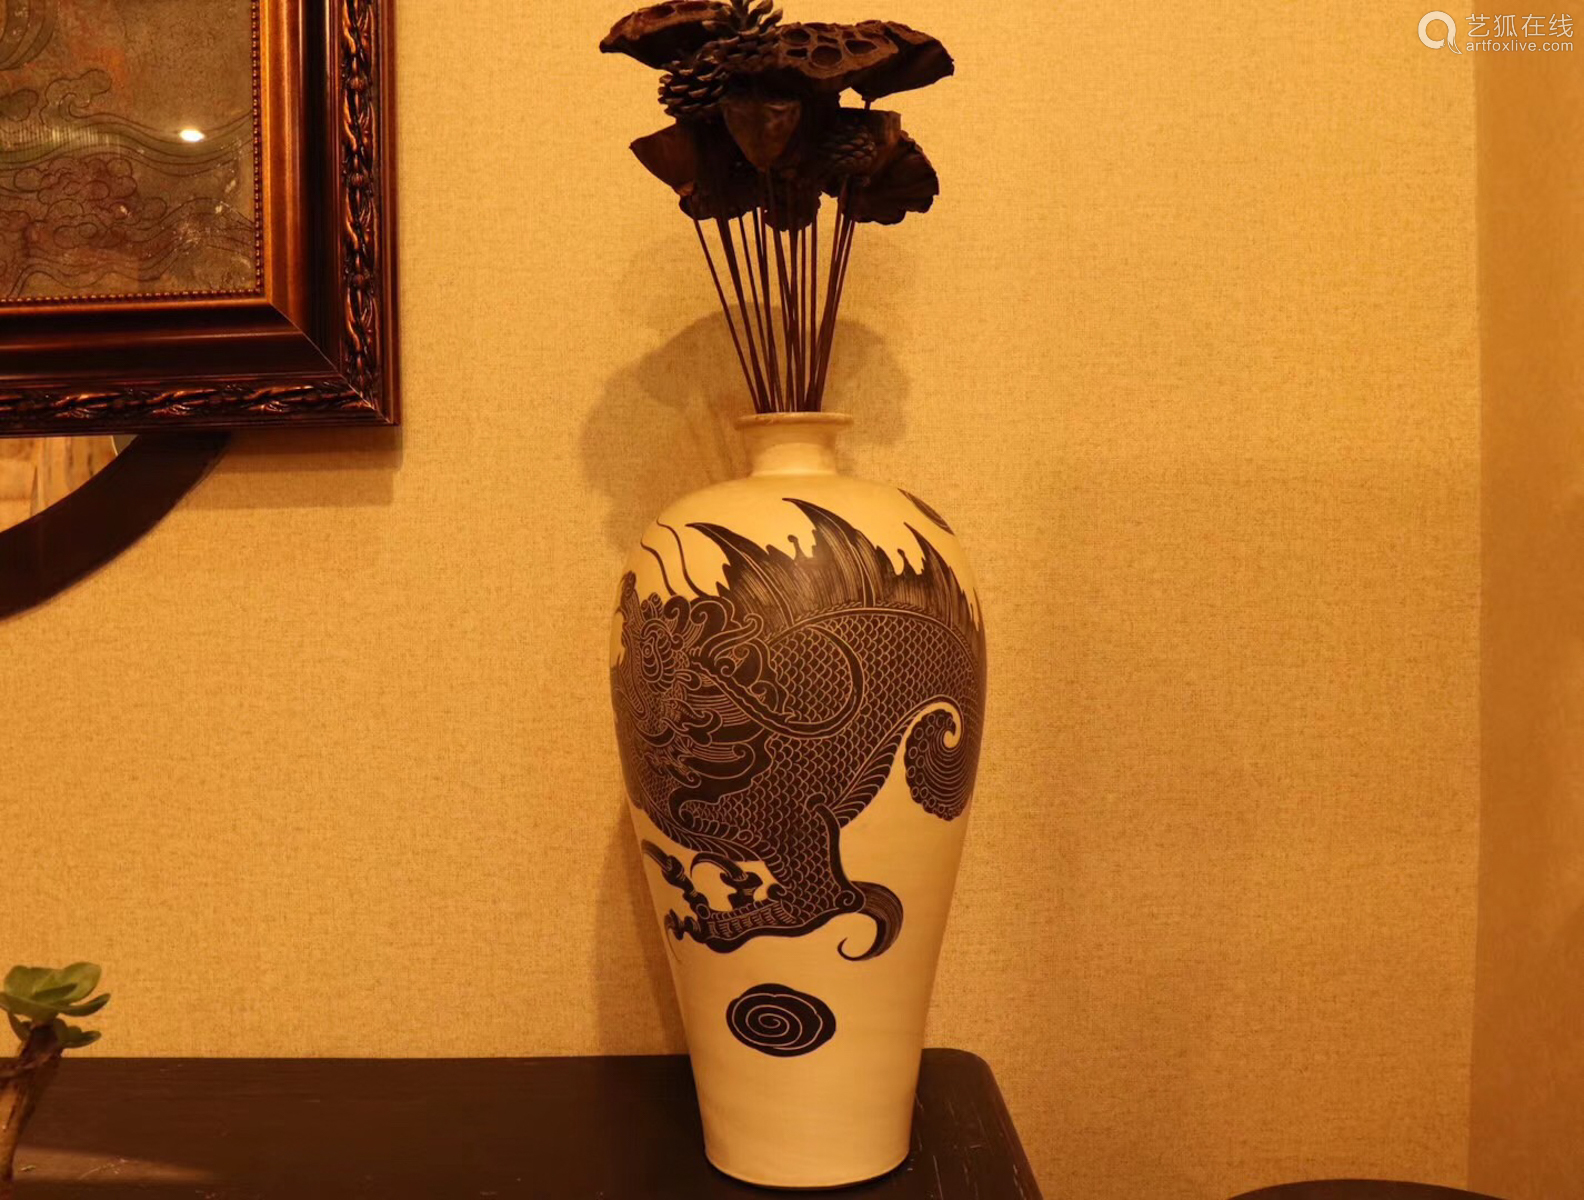 10-11TH CENTURY,  A CIZHOU KILN WITH DRAGON PATTERN PLUM VASE, NORTH SONG DYNASTY